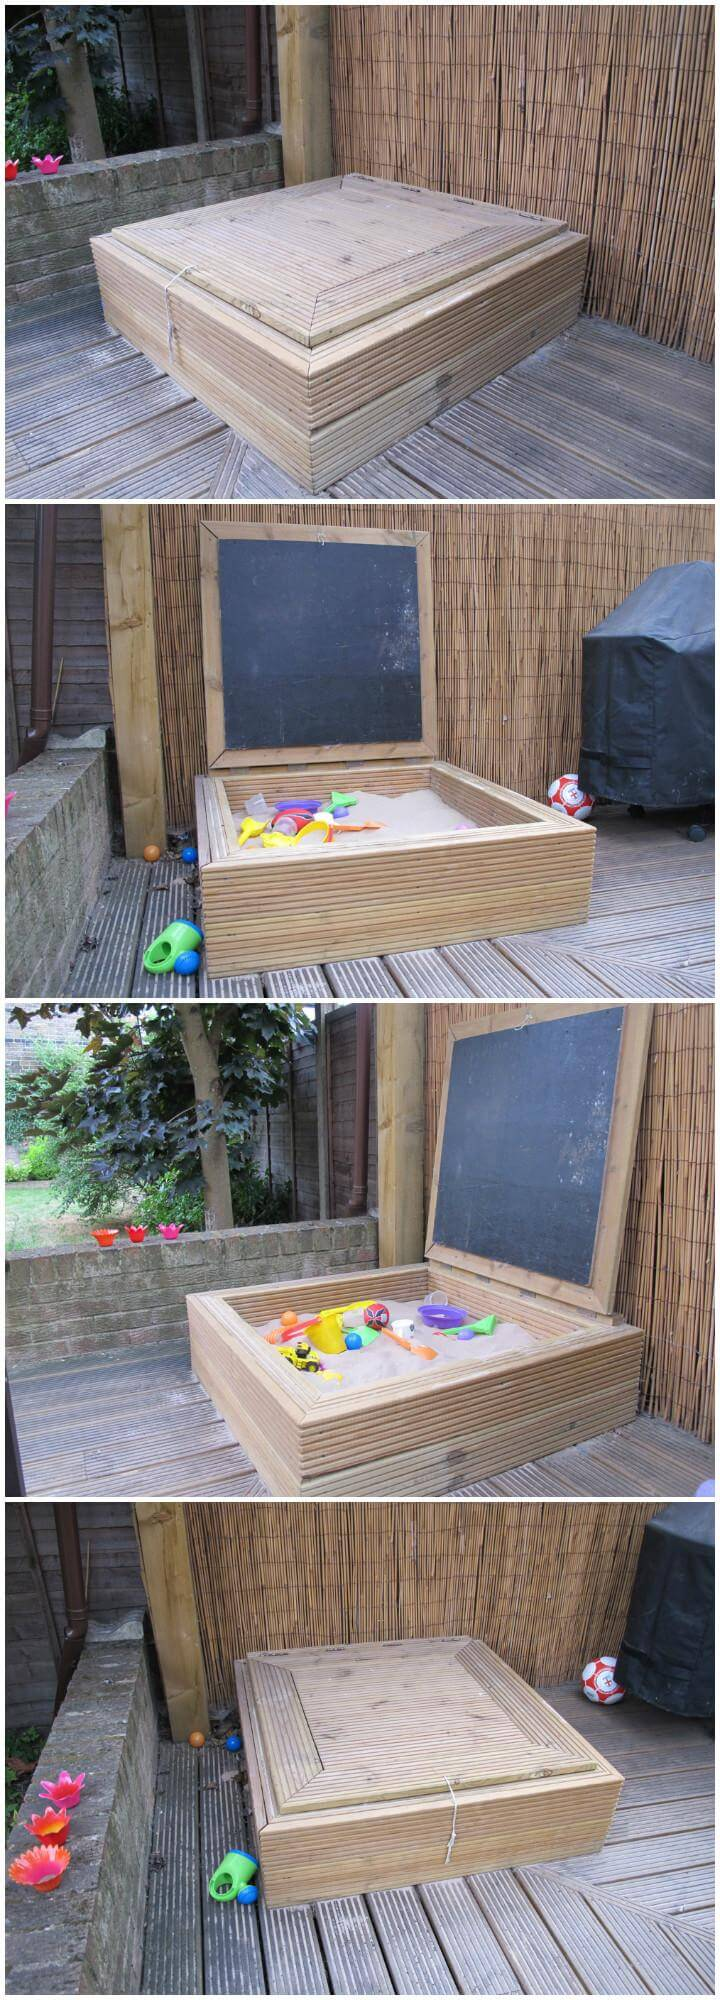 DIY Wooden Sandbox with Integrated Chalkboard in the Lid